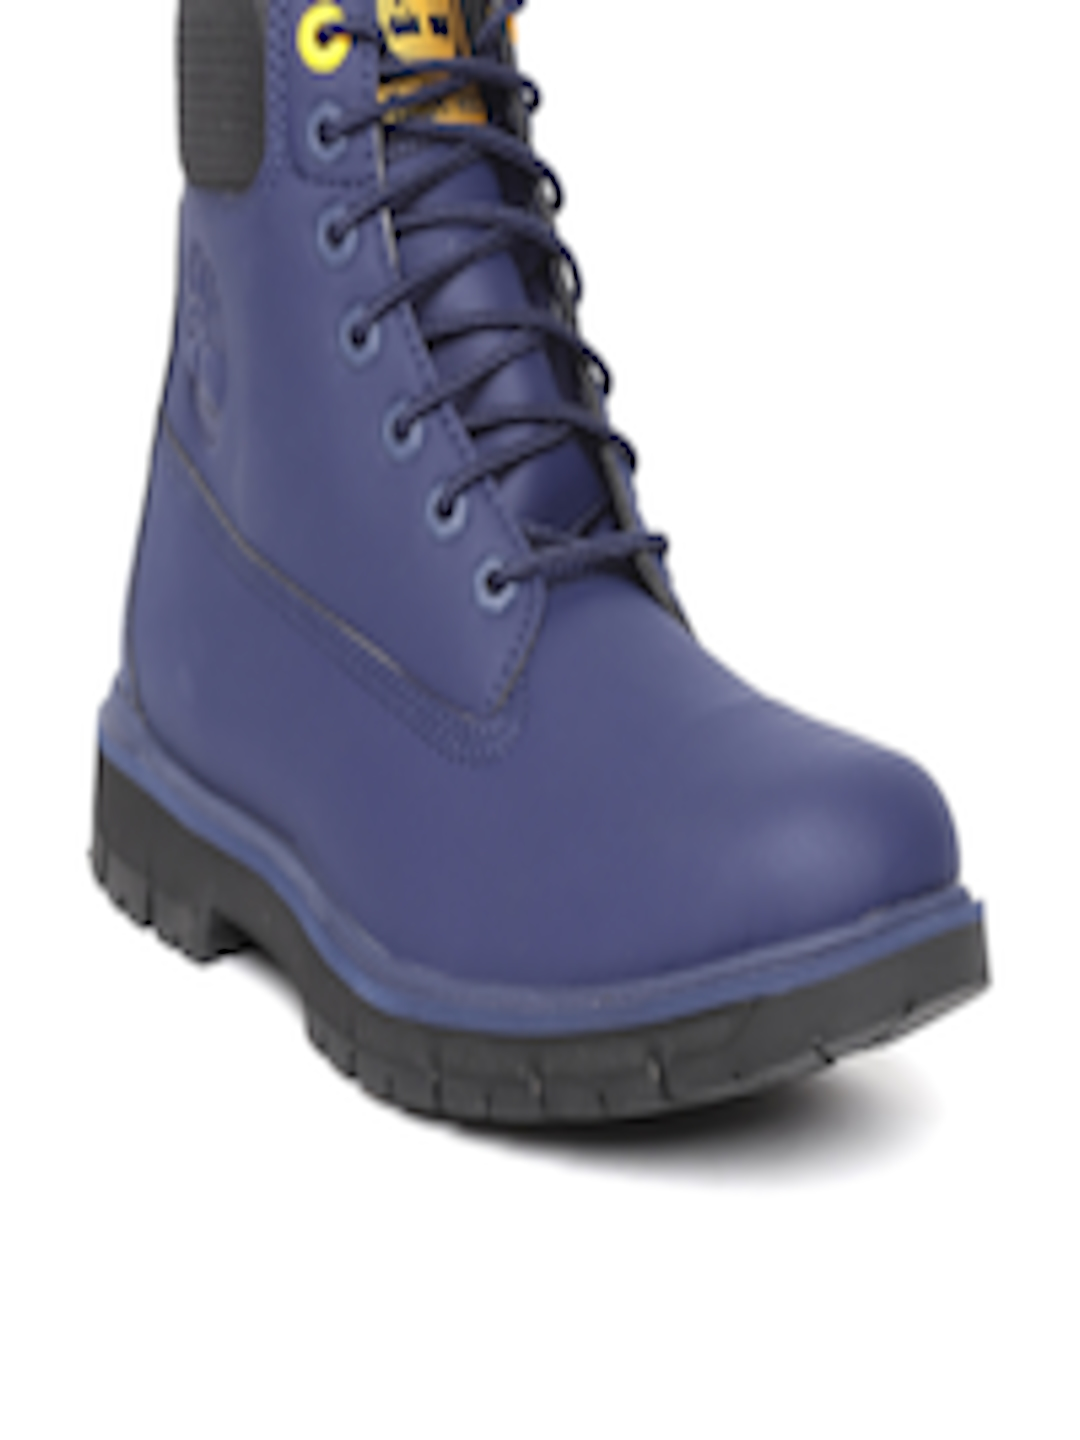 5e2abbc5198 Buy Timberland Men Navy Blue Radford Waterproof 6 Inch Mid Top Boots - -  Footwear for Men